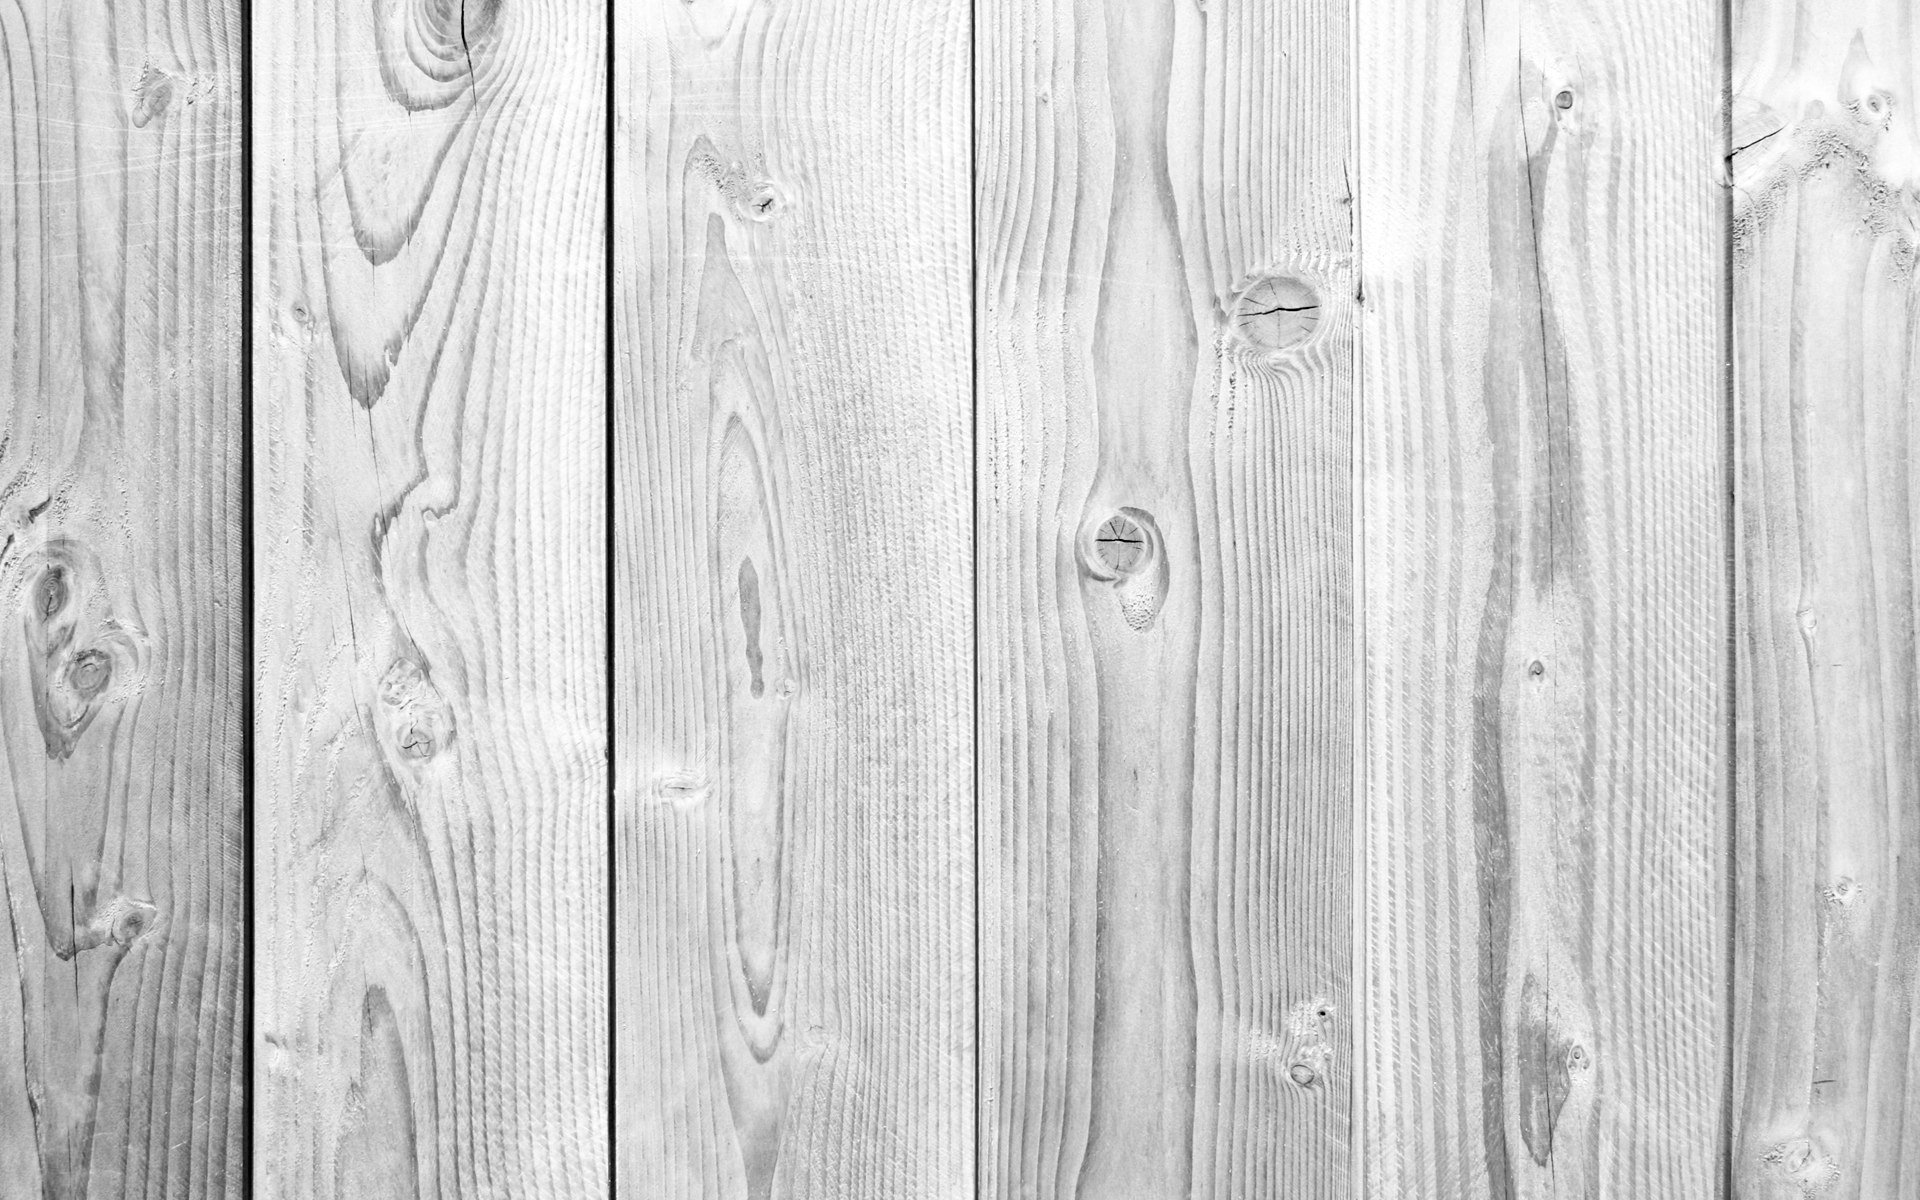 White wood wall texture wallpaper free images at clker for Black and white wallpaper for walls